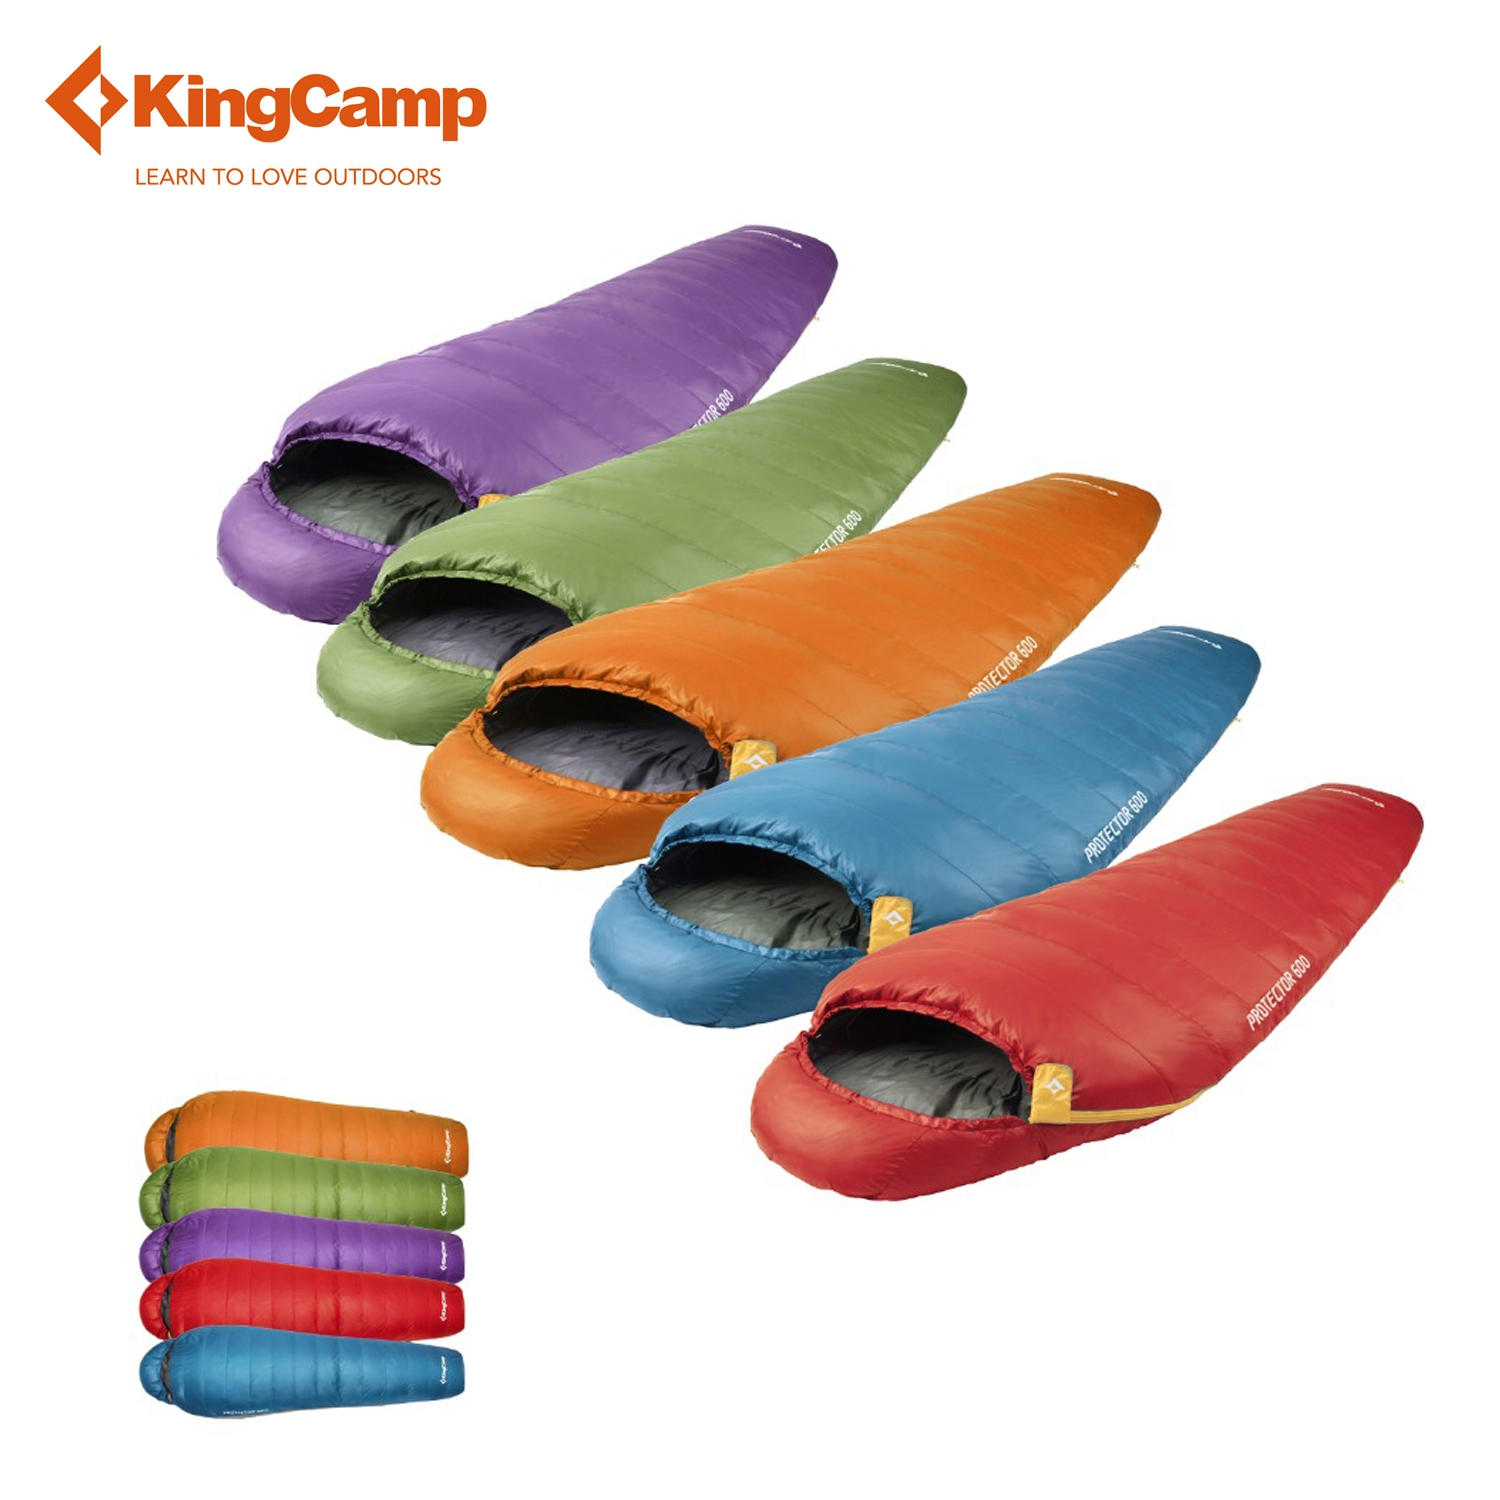 KingCamp Lazy Bag Outdoor Winter Mummy Sleeping Bag Spring & Autumn Down Sleeping Bag for Camping Equipment Five Colors